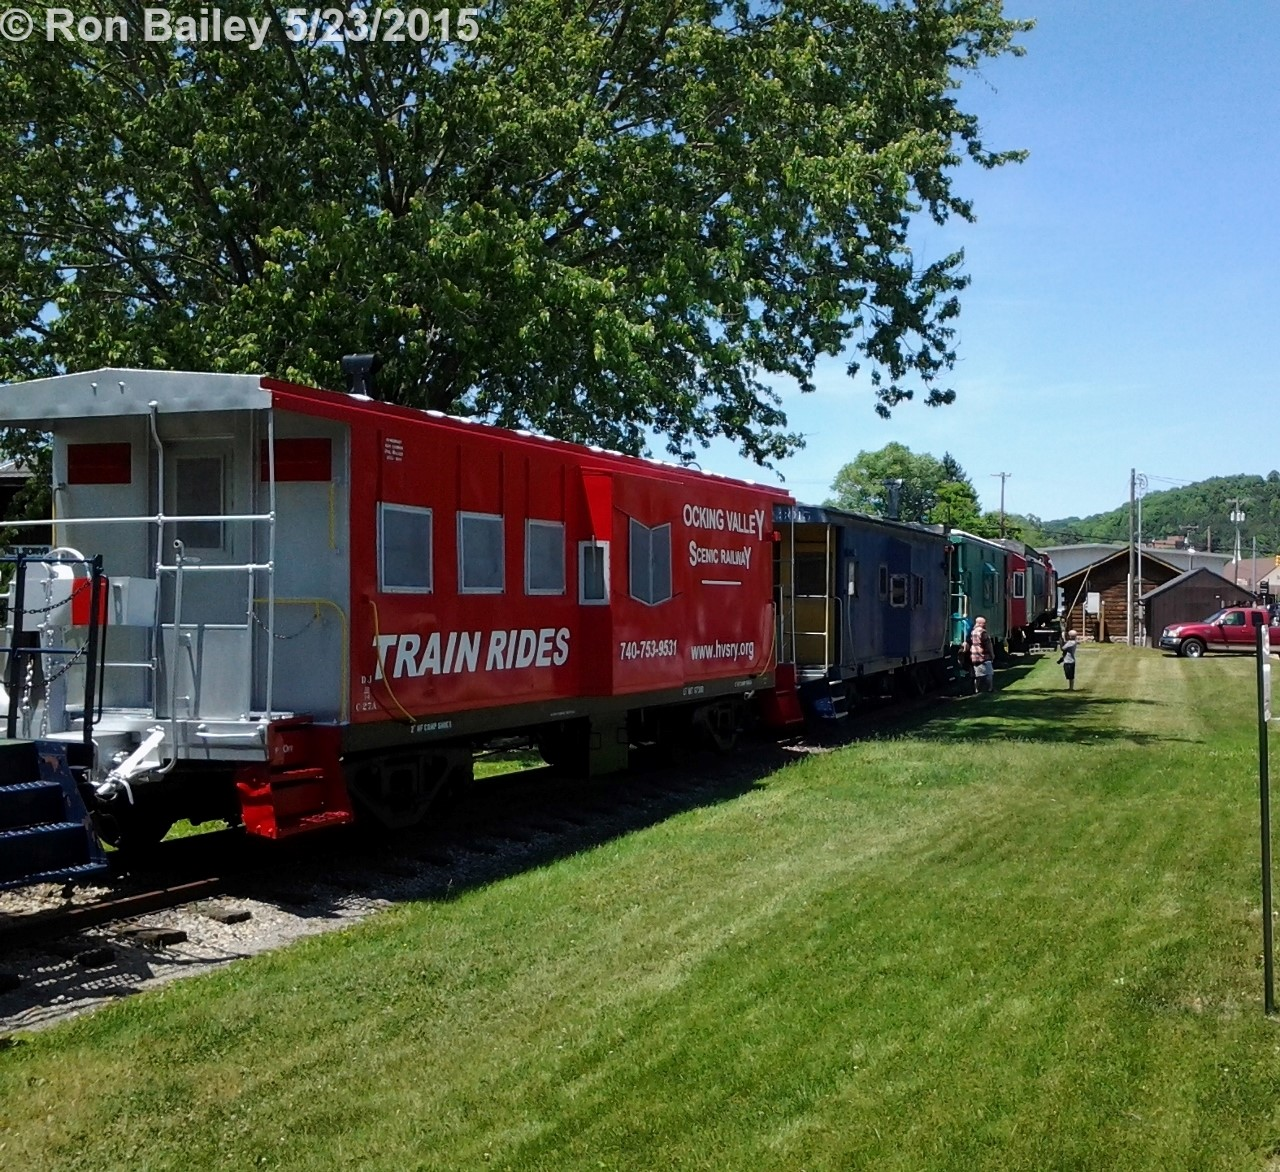 Hocking Valley Scenic Railway  5-23-2015 12-58-14 PM